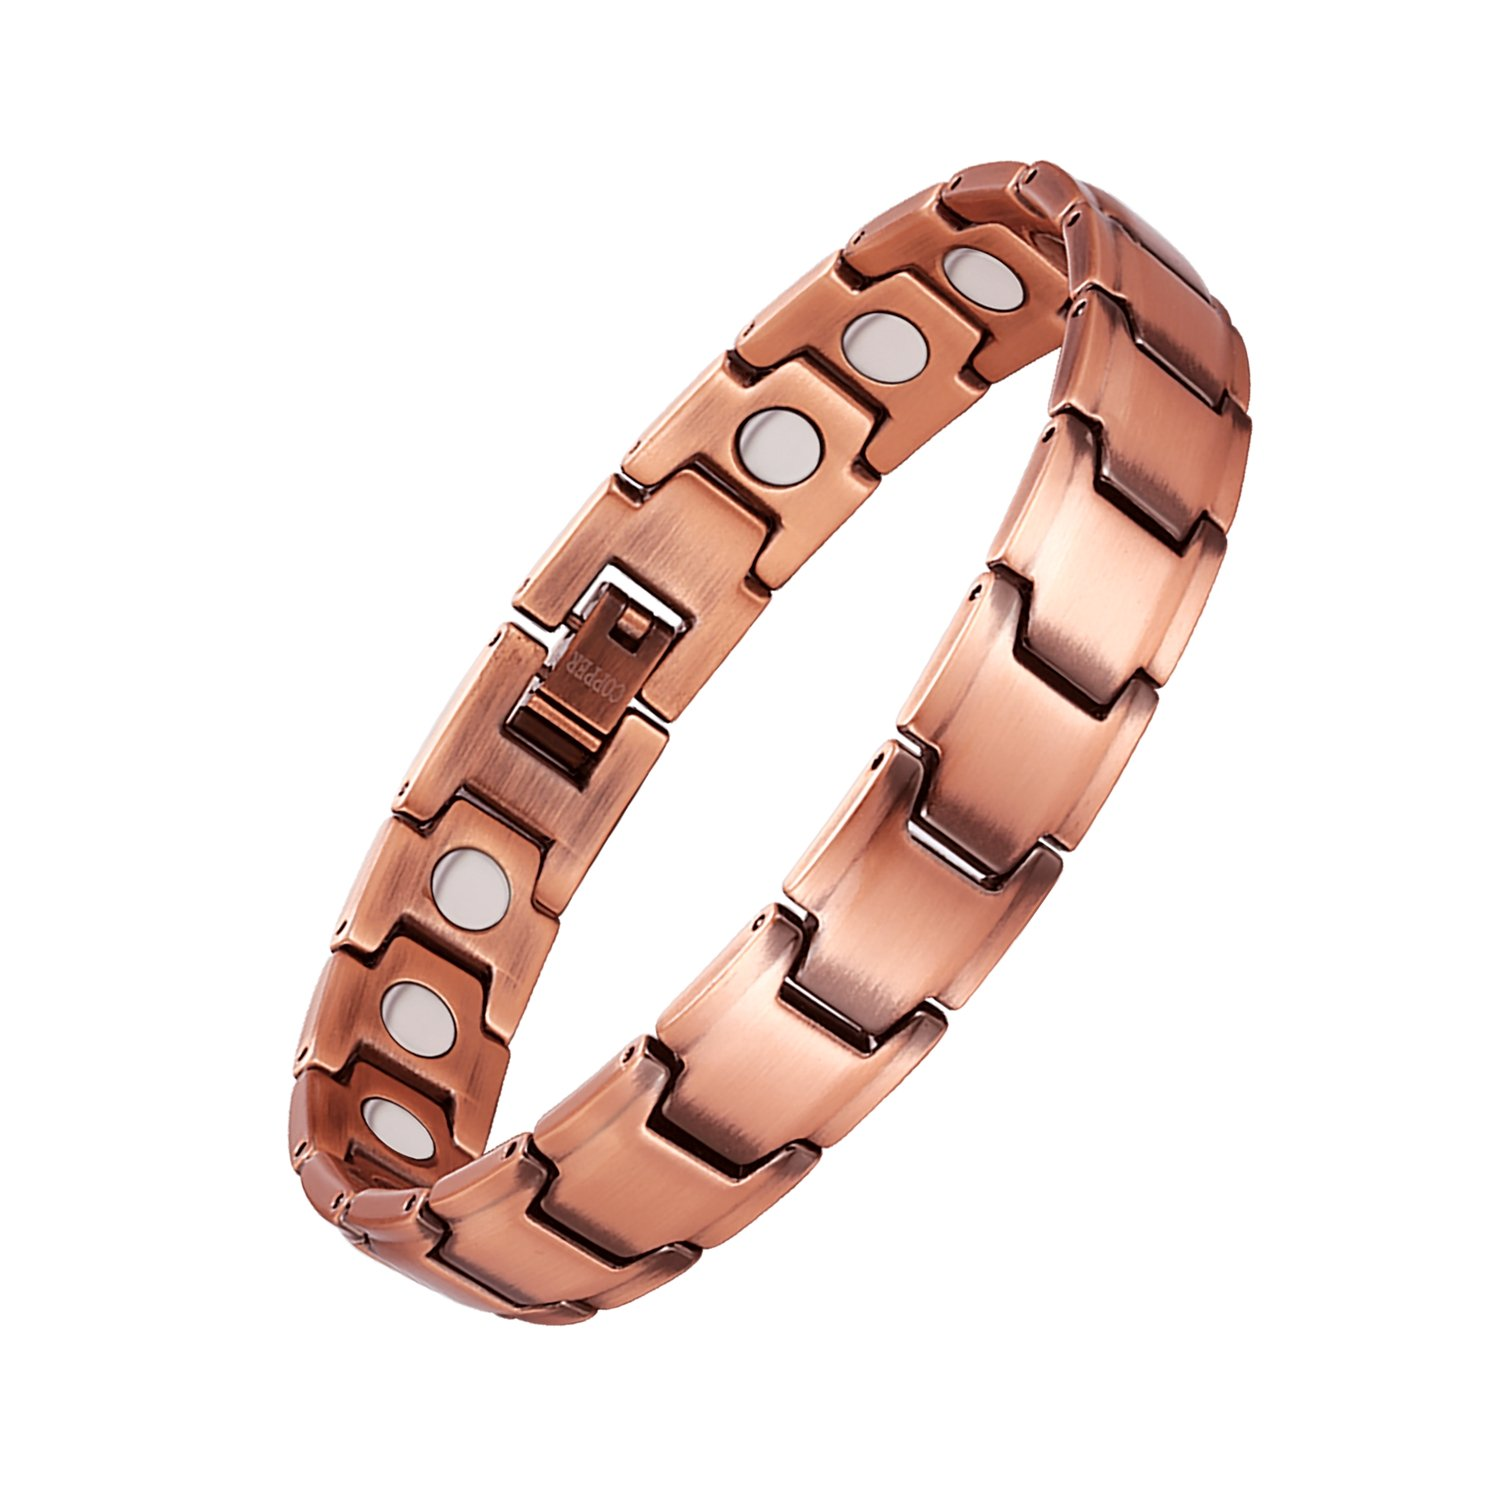 Feraco Men's Copper Bracelet Strong Magnetic Therapy for Arthritis Pain Relief with Free Removal Tool